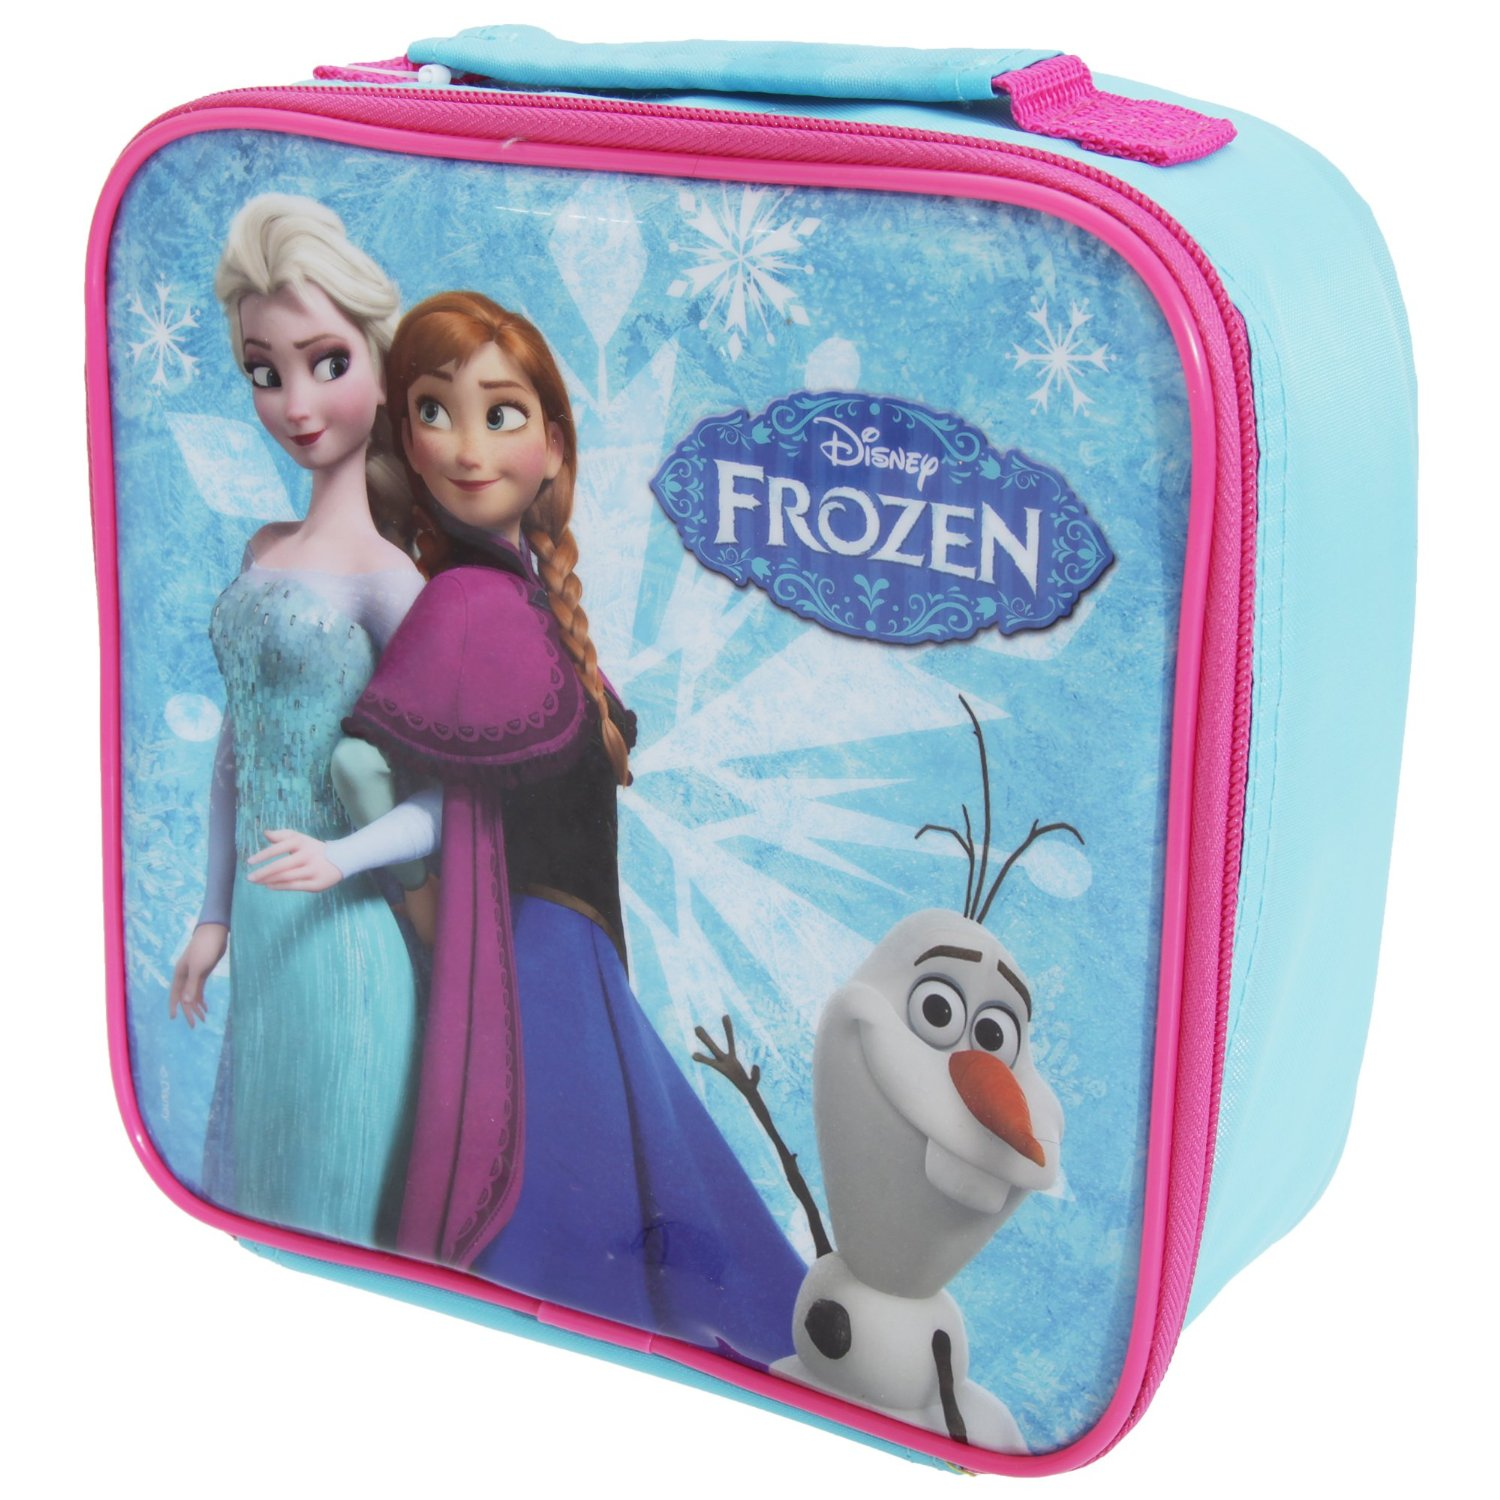 Disney Frozen Childrens Girls Official Insulated Lunch Bag Cooler (One Size) (Blue/Fuchsia)